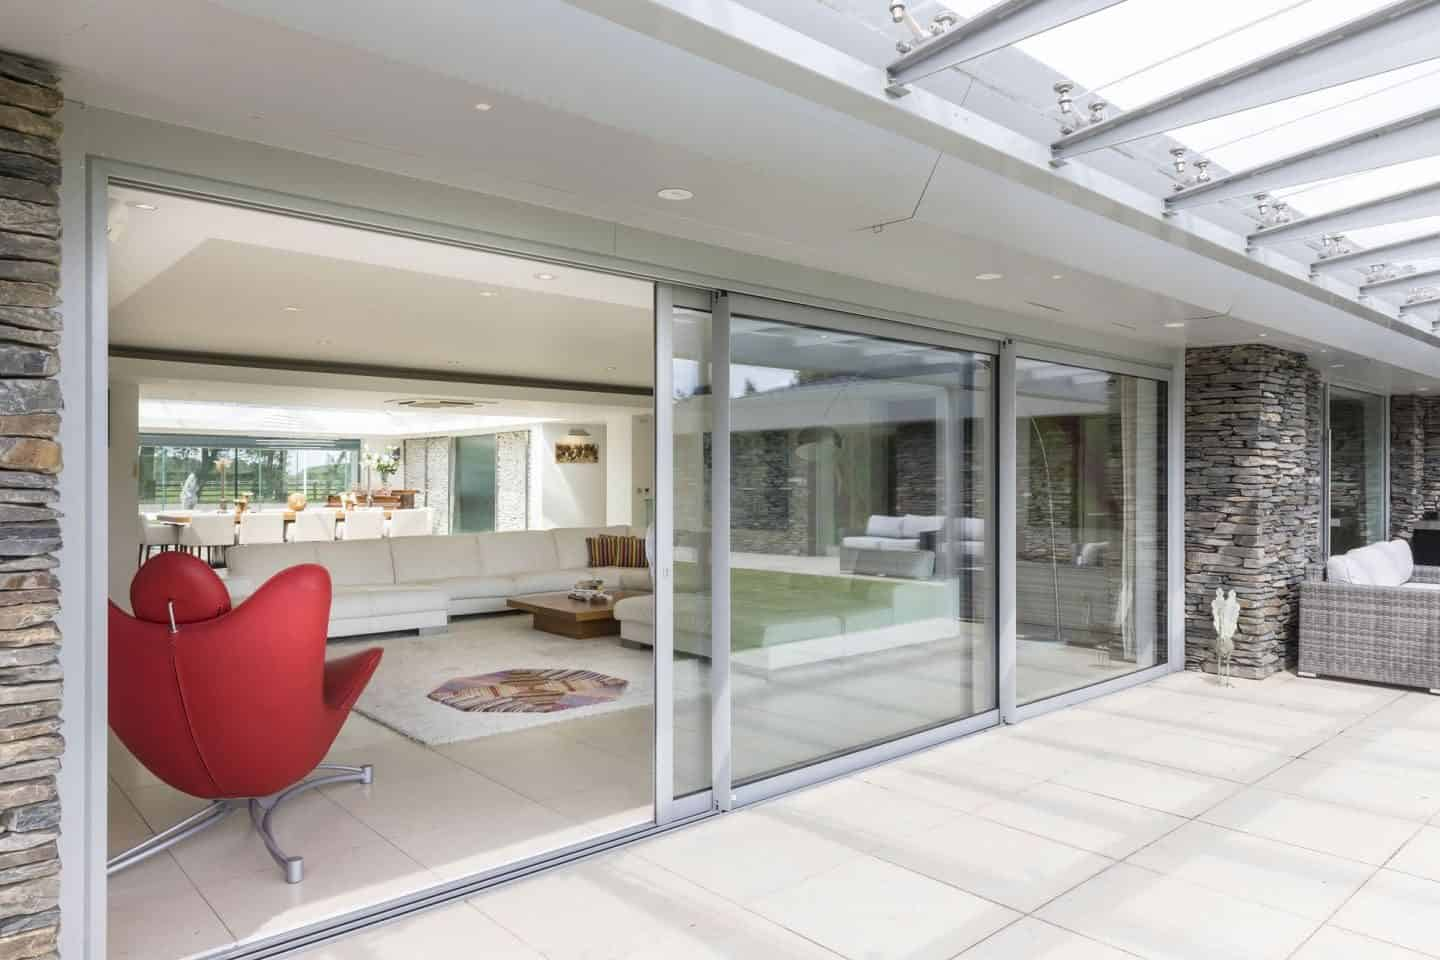 Pilkington Glass large glazed sliding doors from living room leading out onto a garden patio